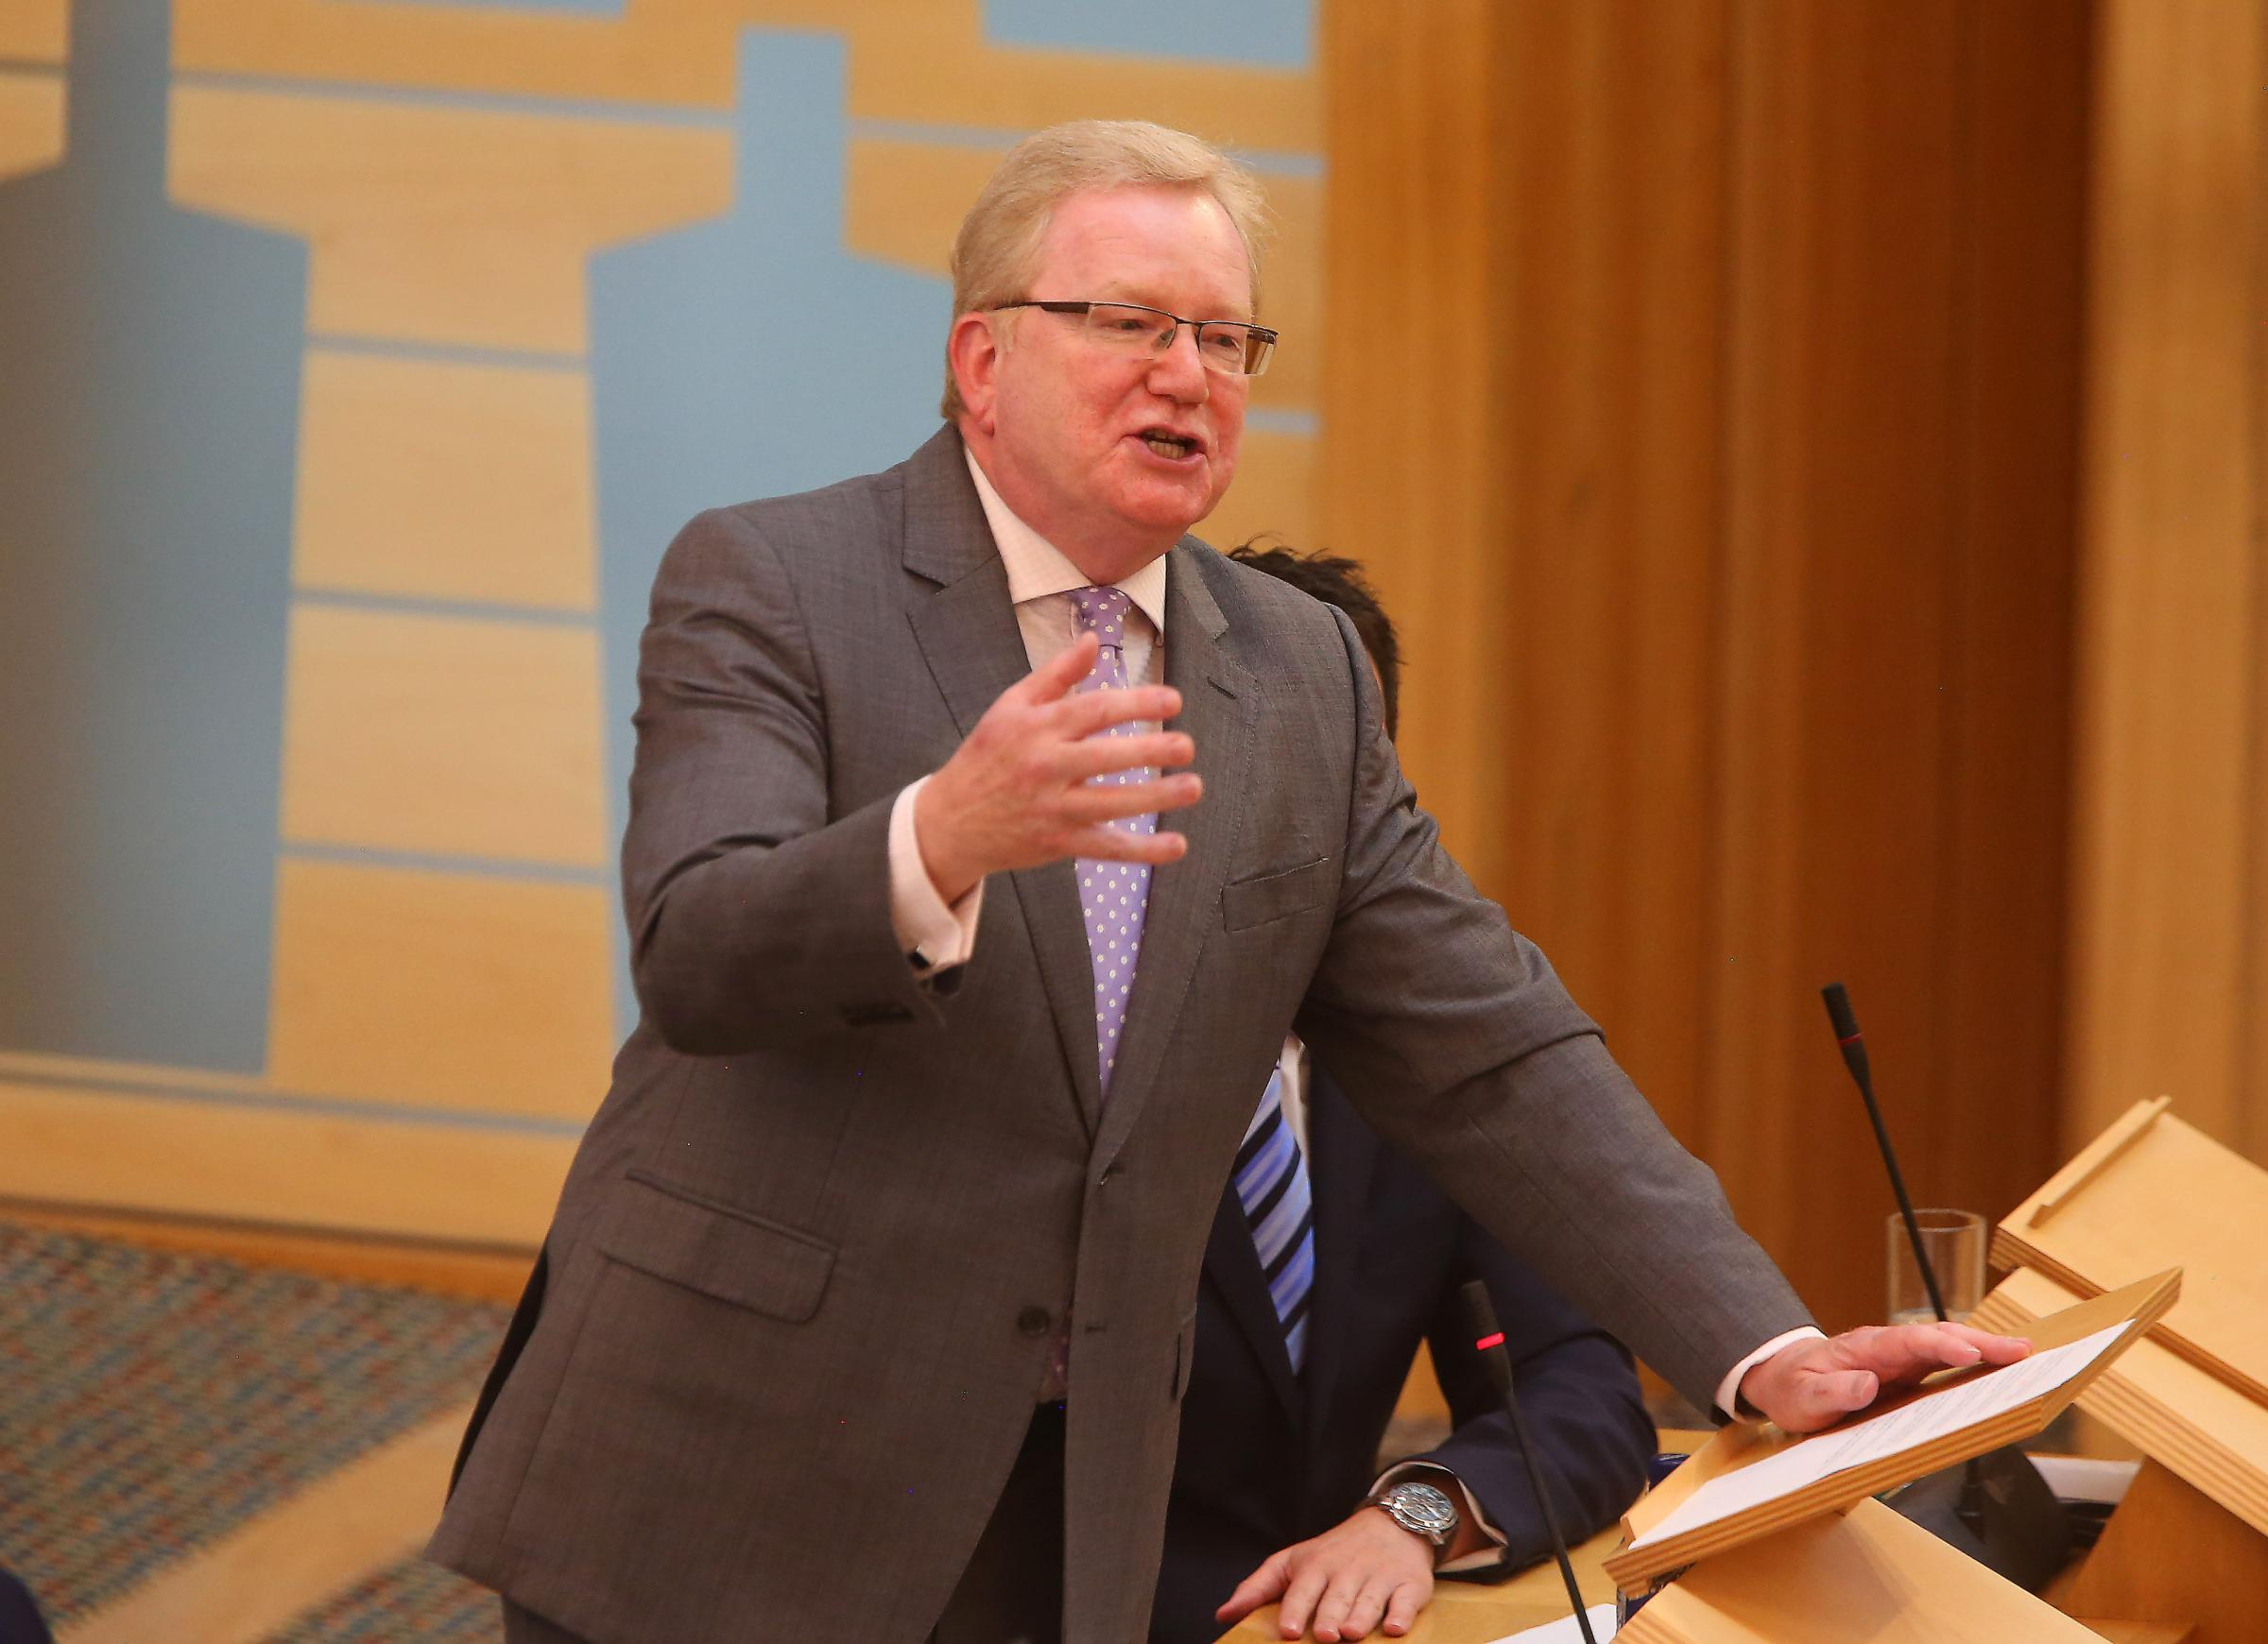 Tory MSP Jackson Carlaw had his final FMQs as Tory interim leader yesterday